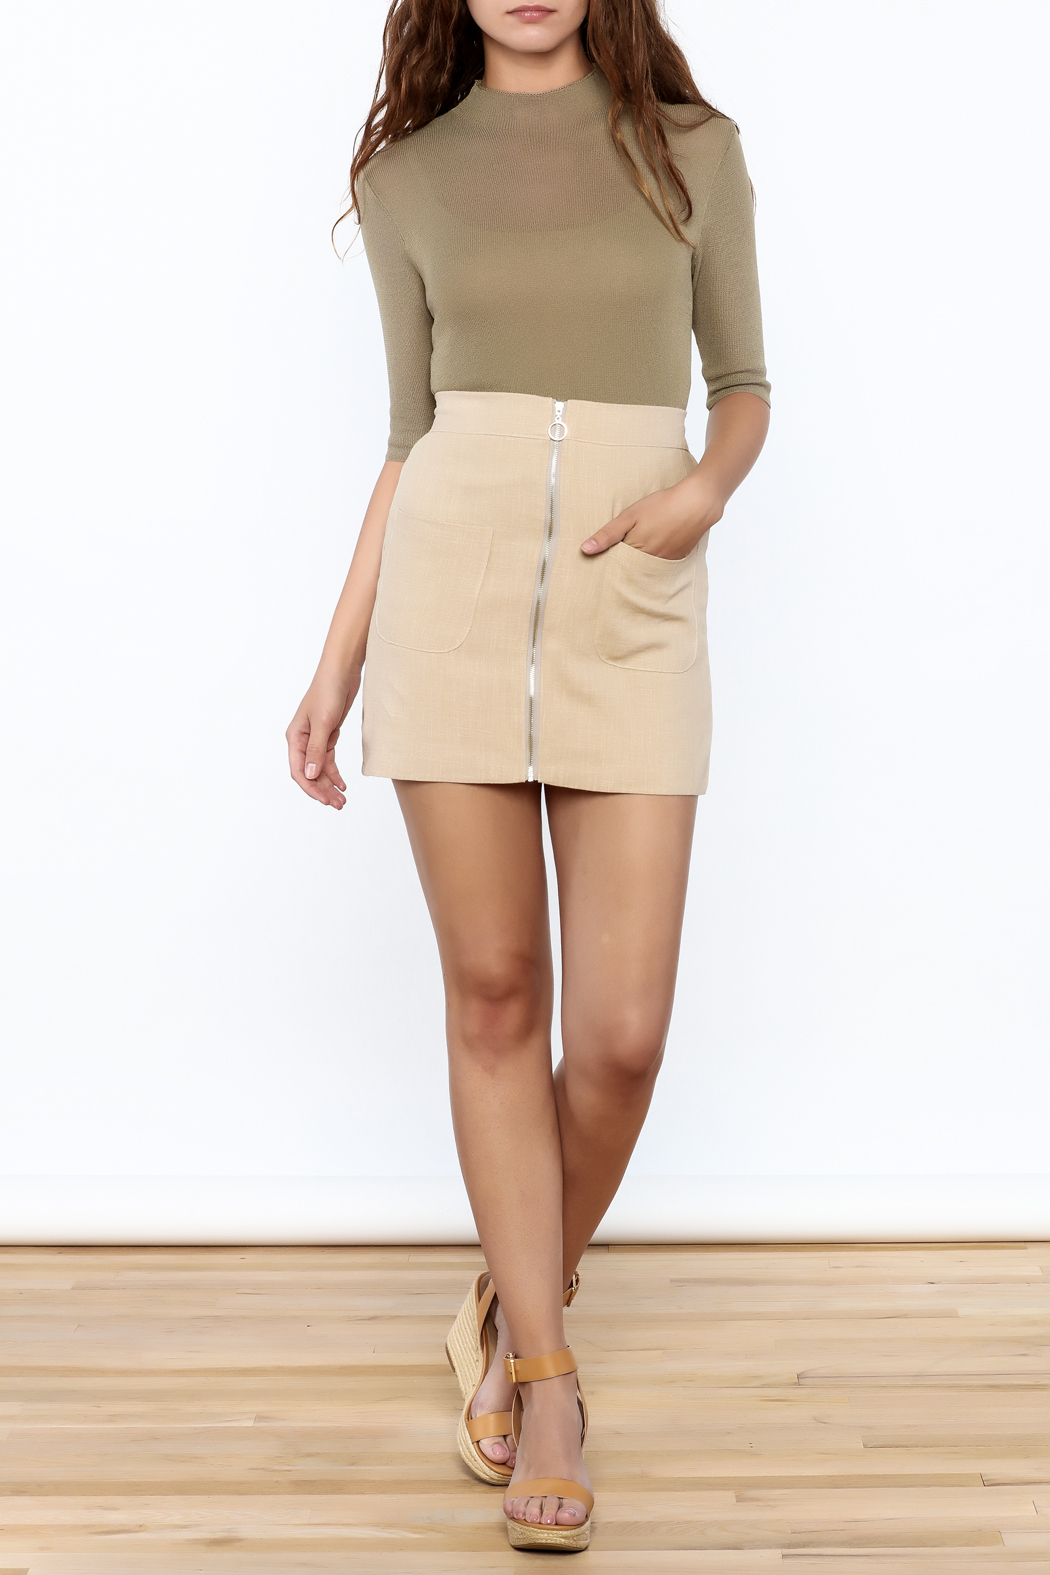 Pinkyotto Olive Fitted Top - Side Cropped Image